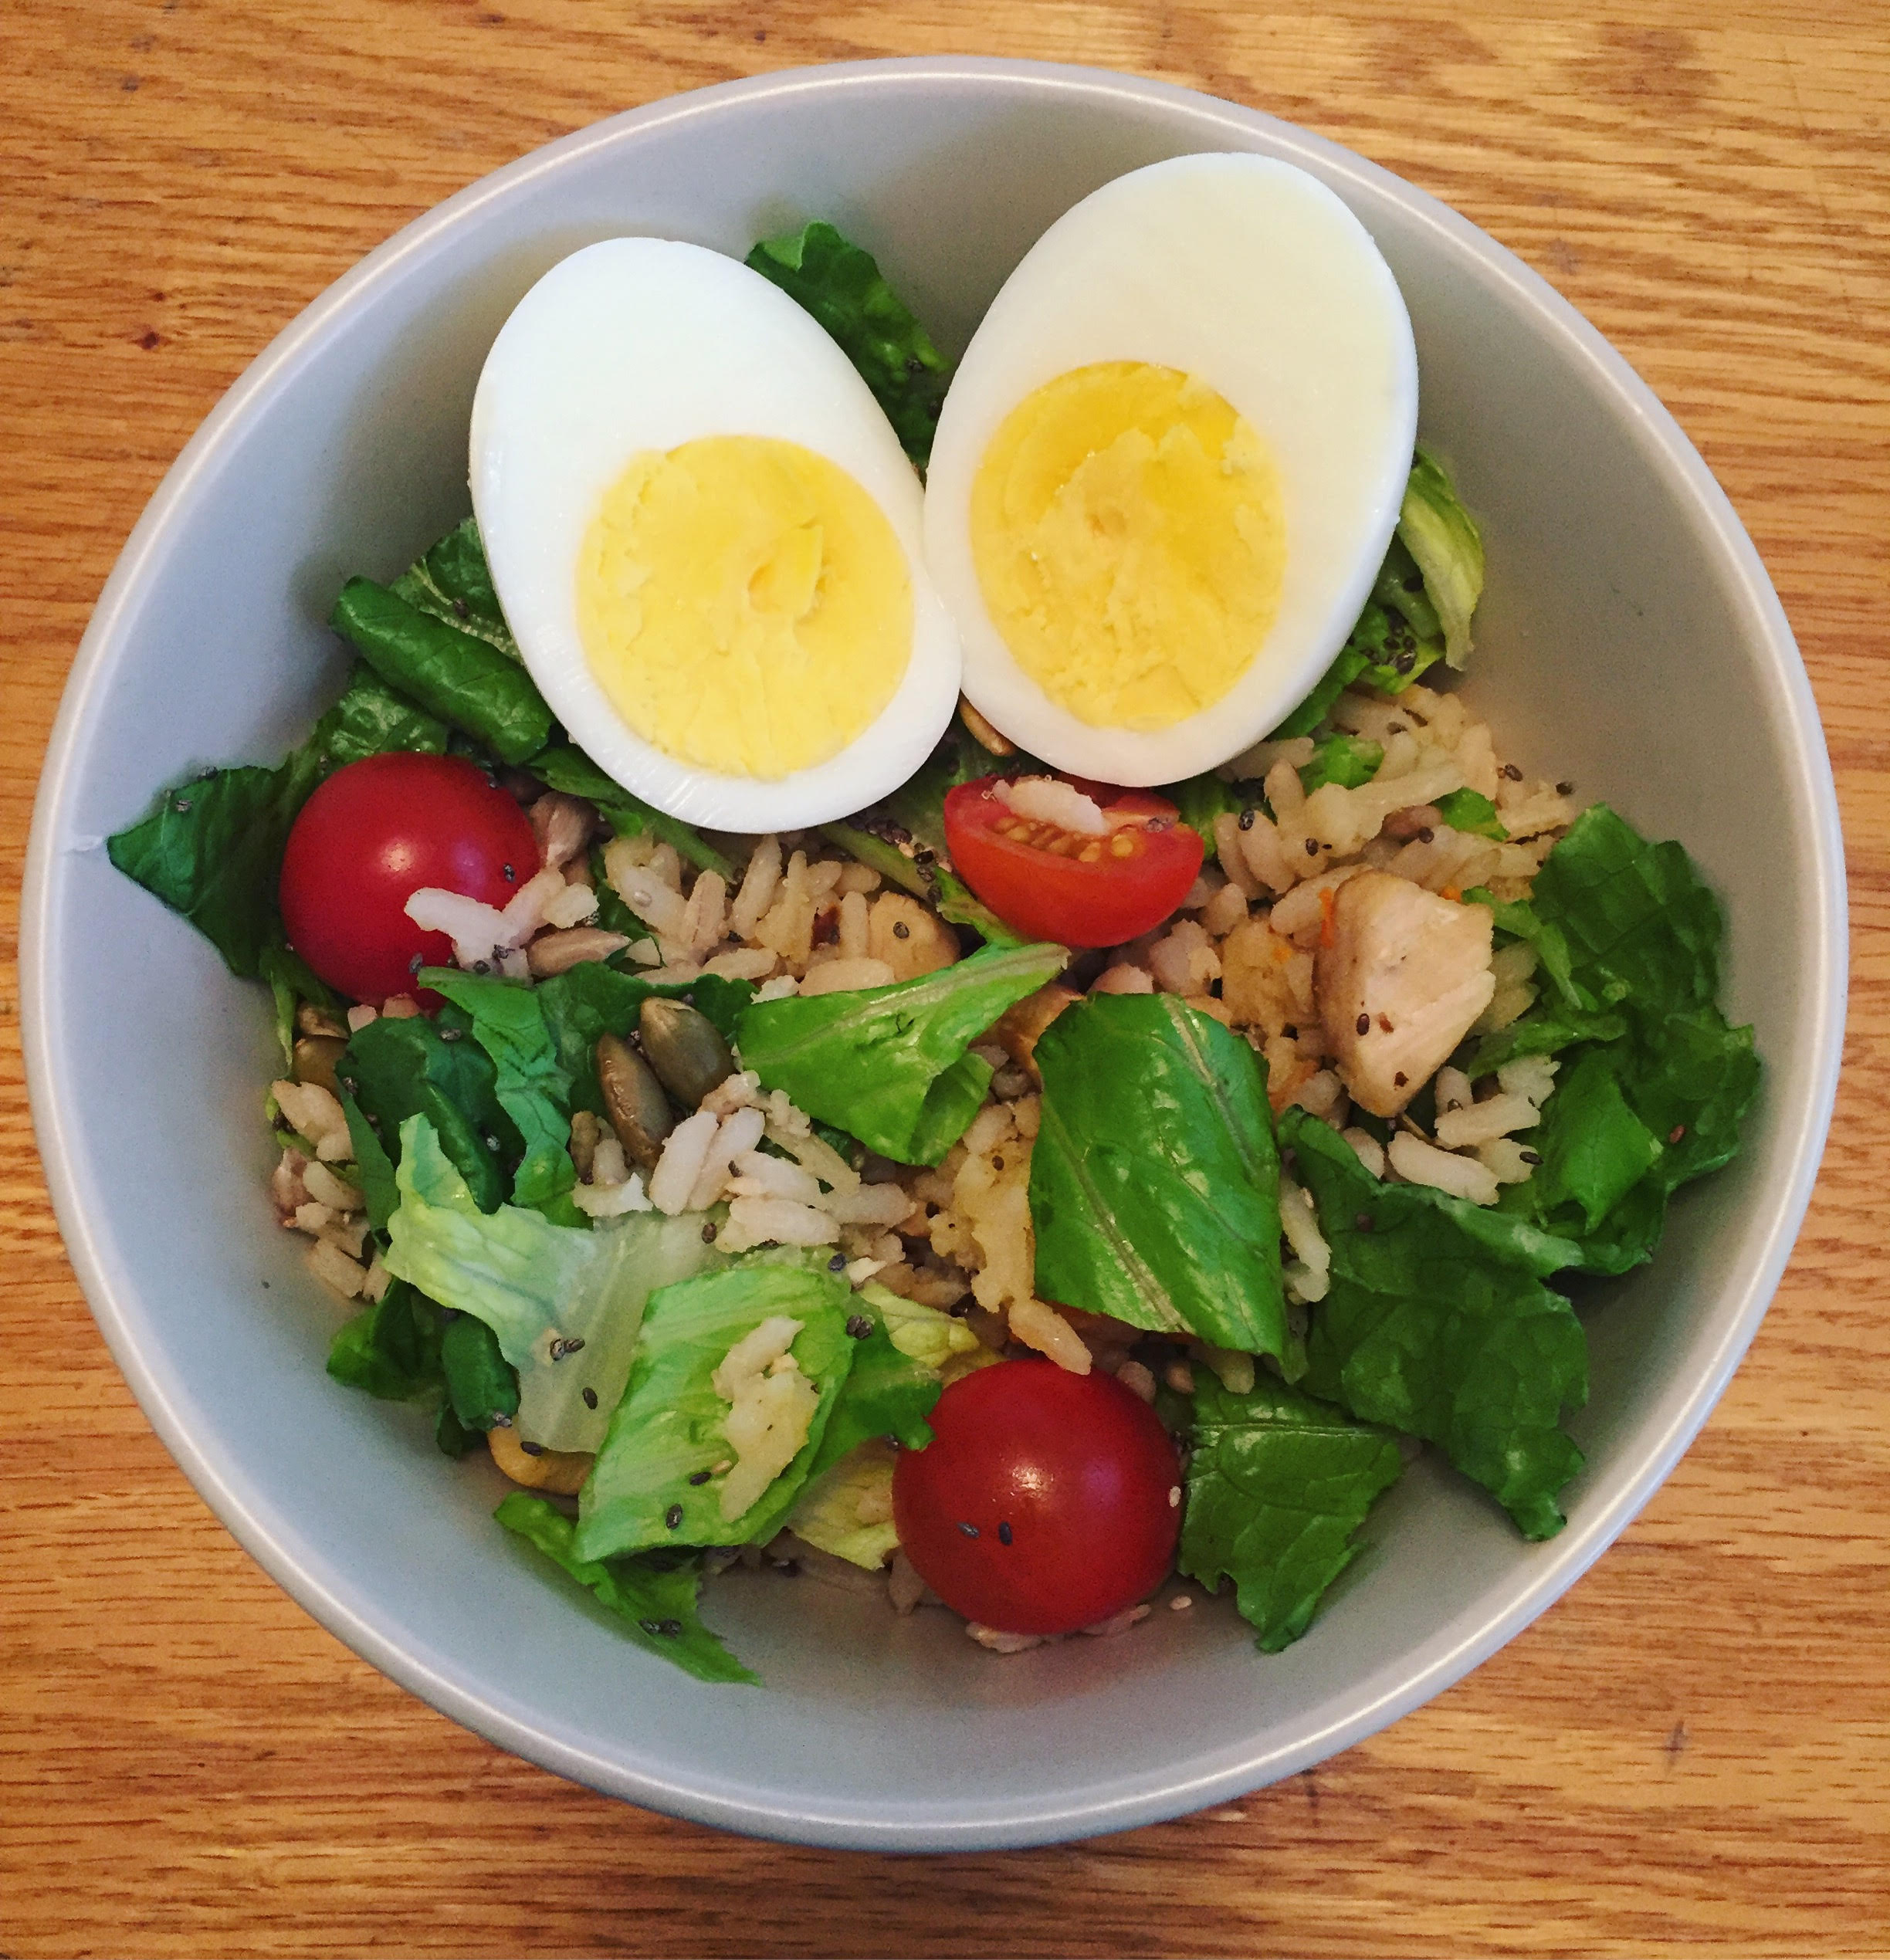 Delicious lunch, hard boiled eggs, salad, rice & chicken